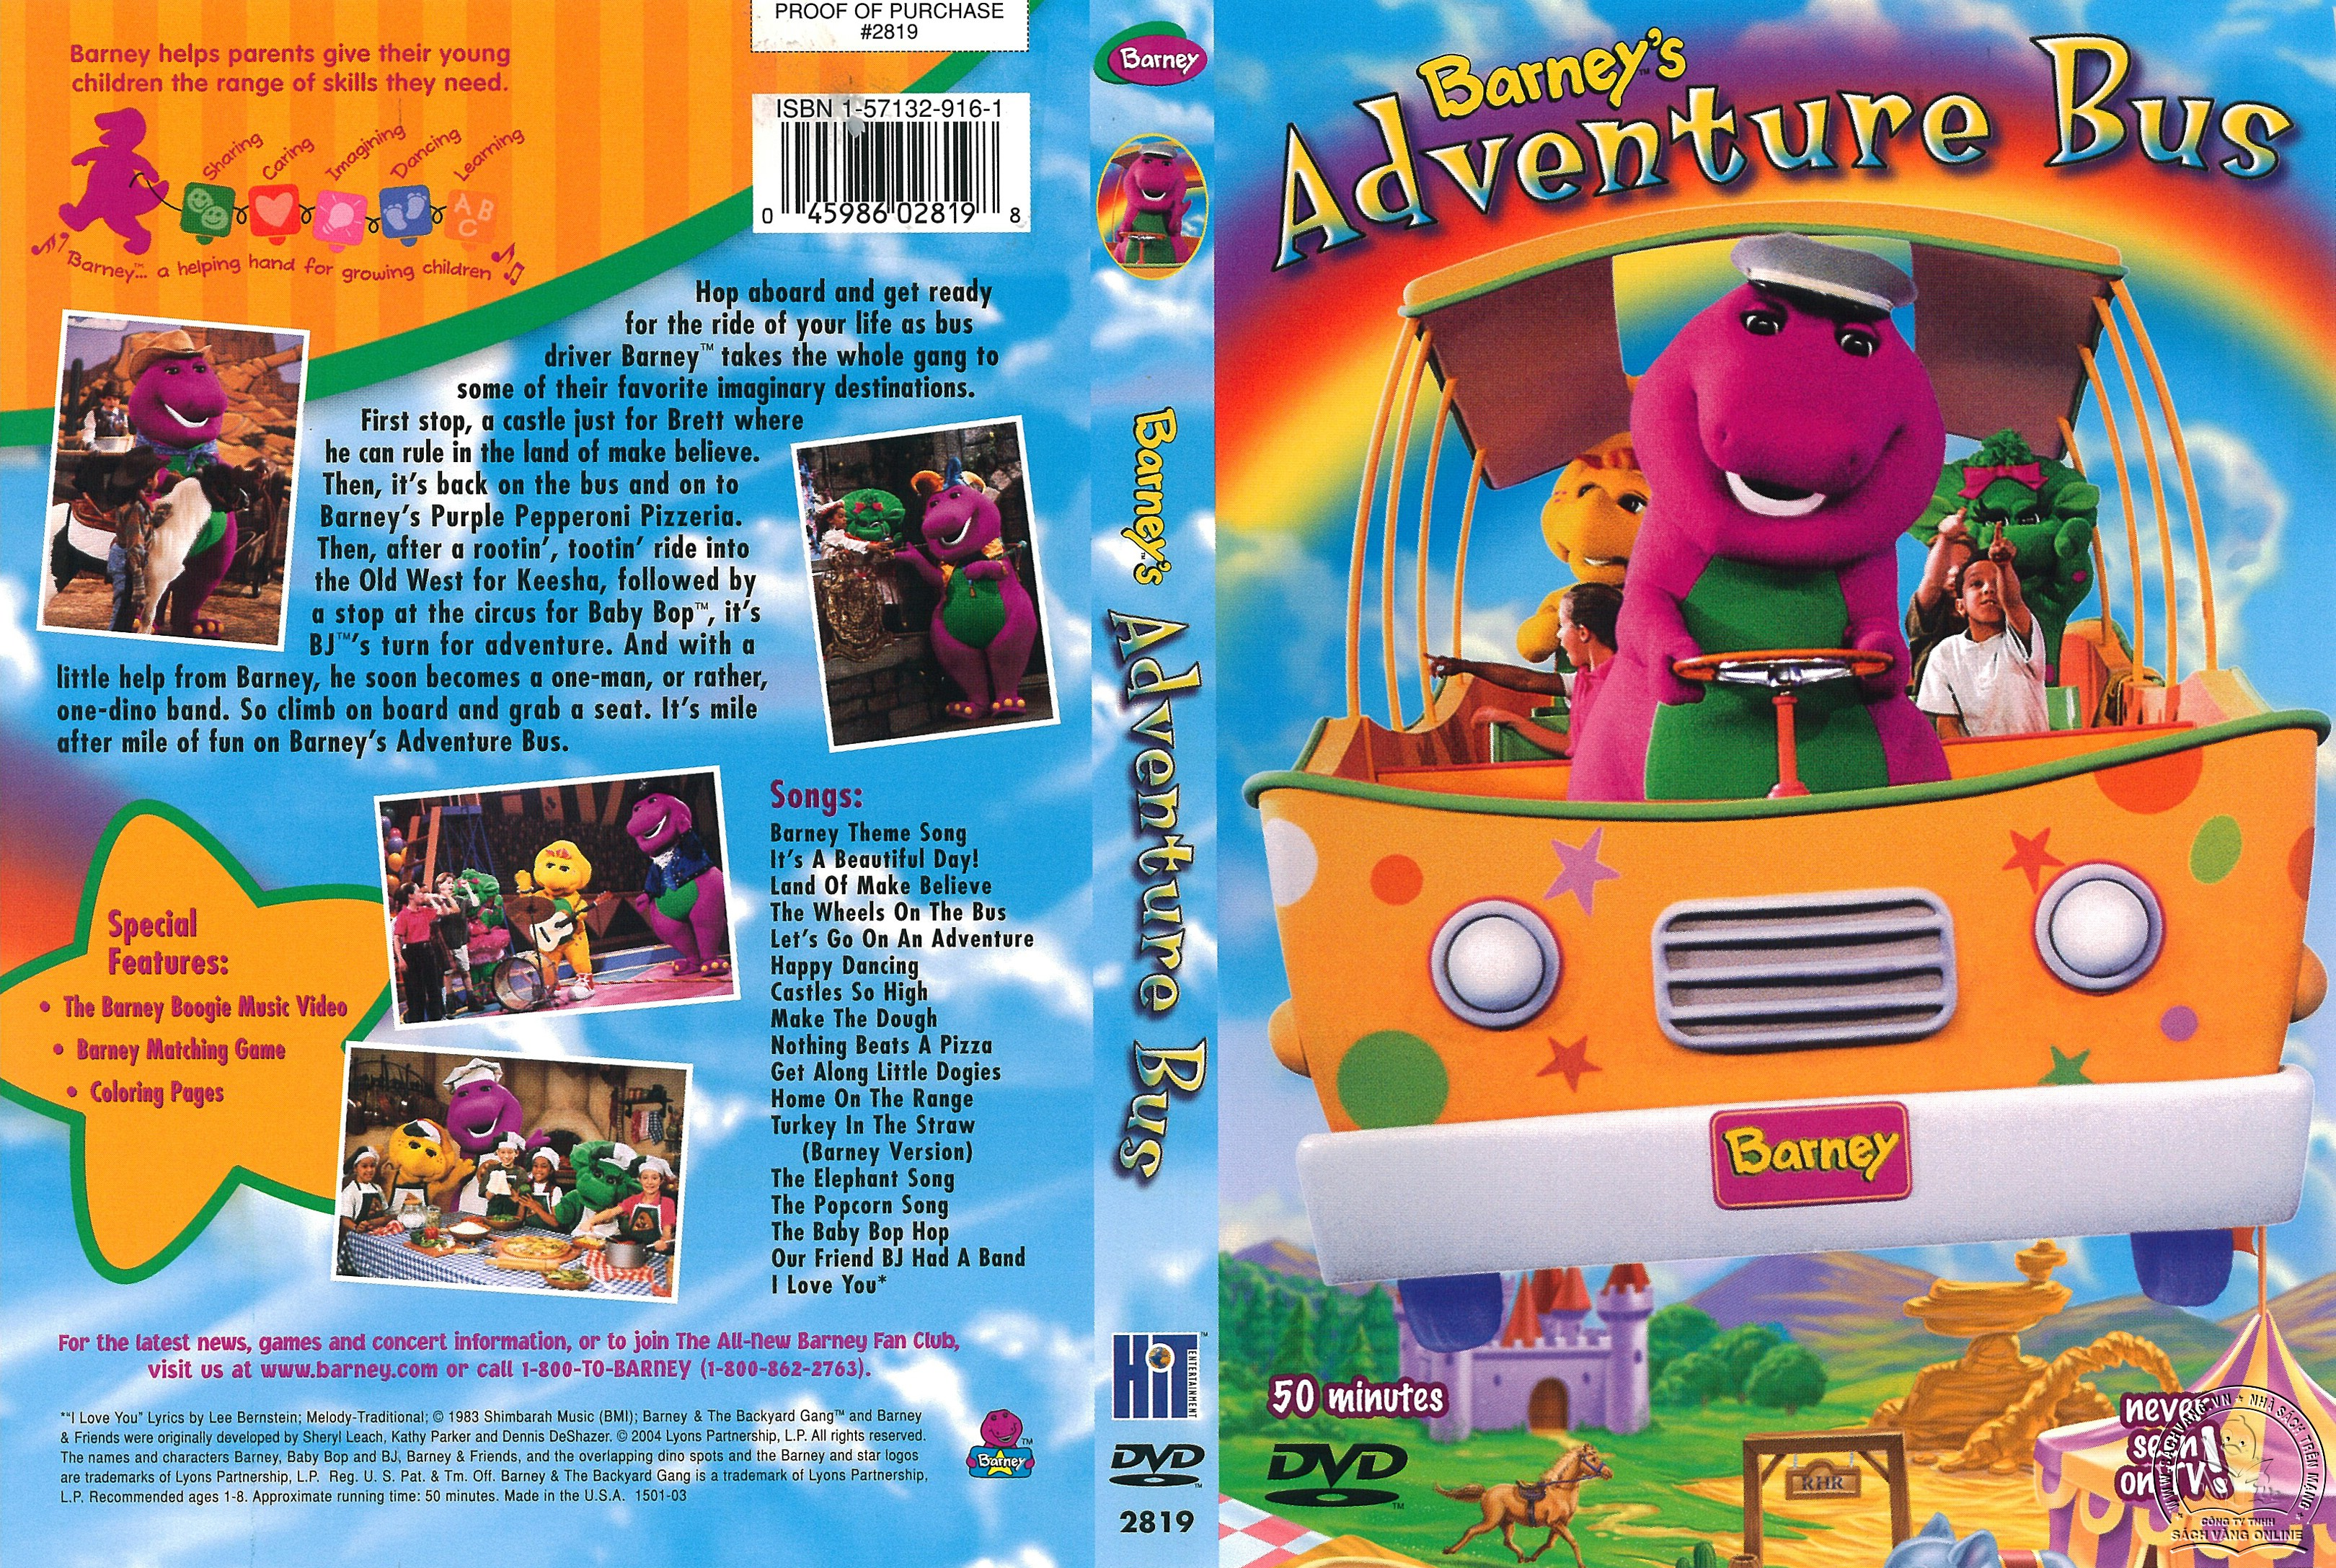 07-Barney Adventure Bus - Cover